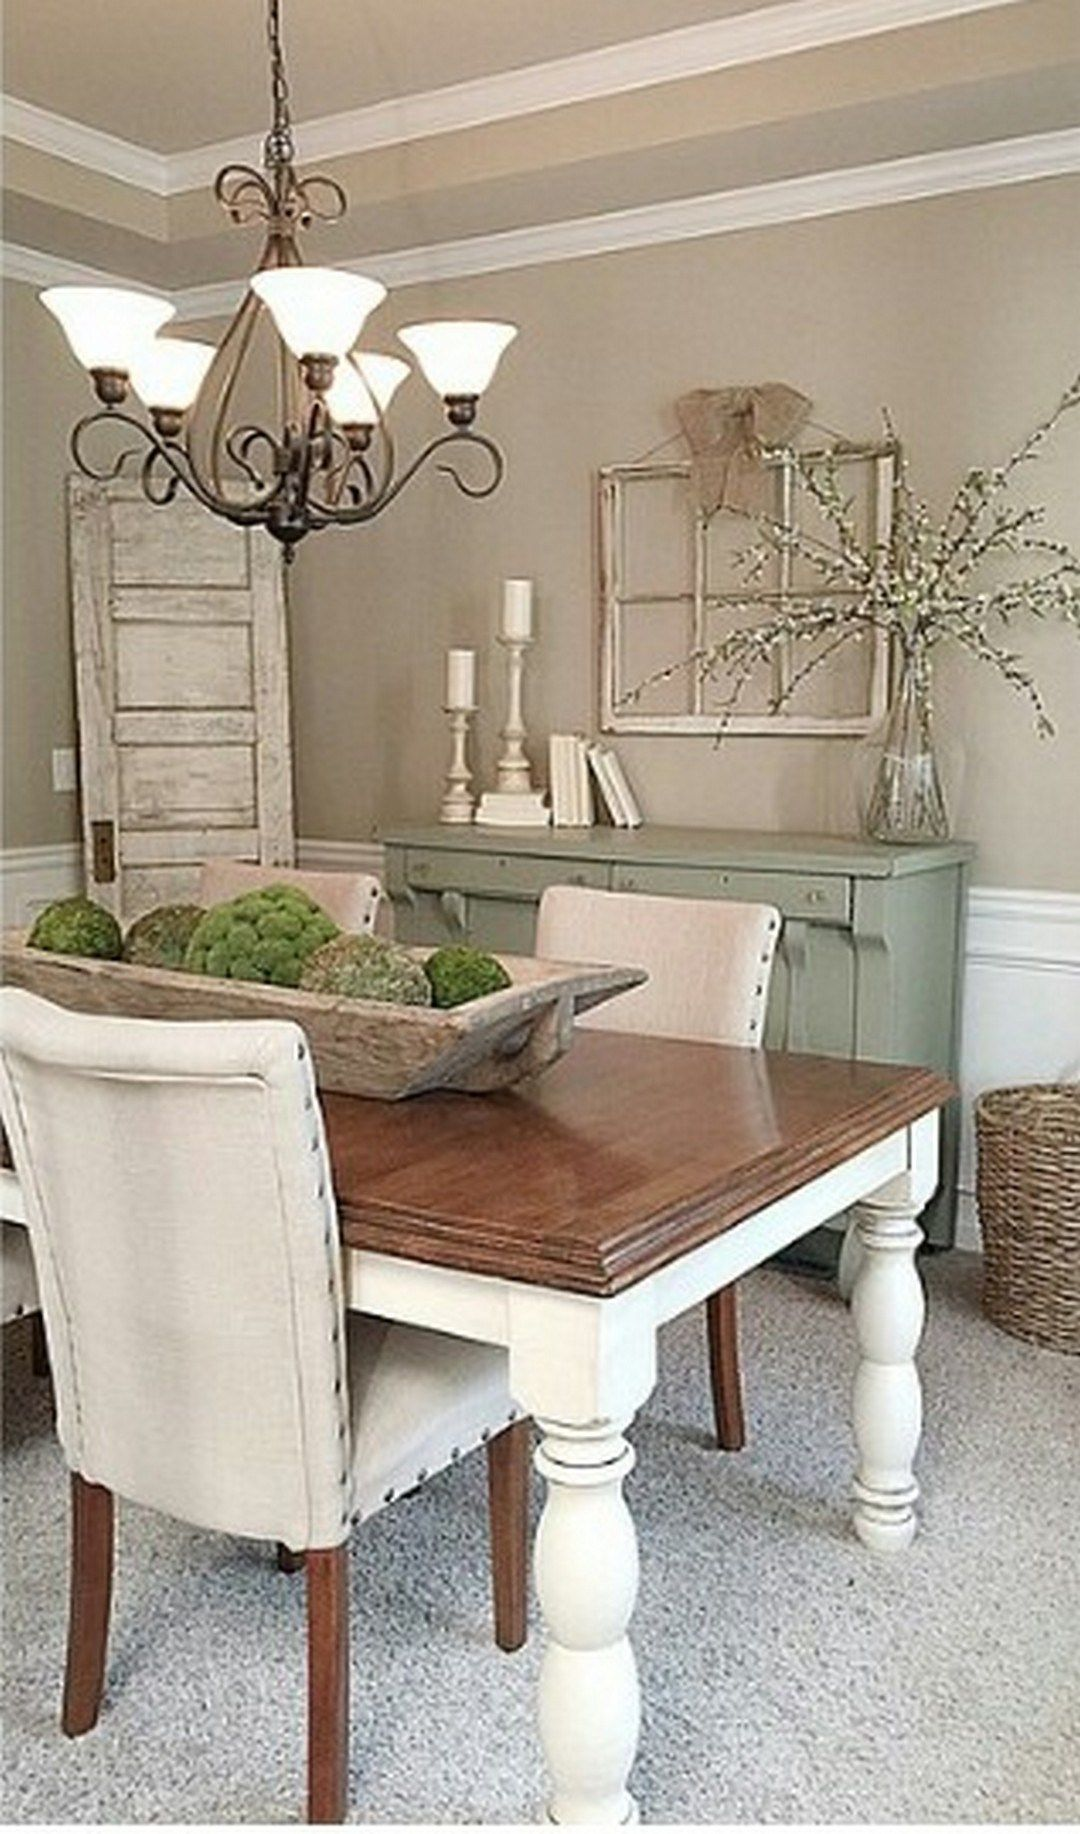 Dining Table Decor Ideas Modern Rustic Farmhouse Dining Room Style 22 Dining